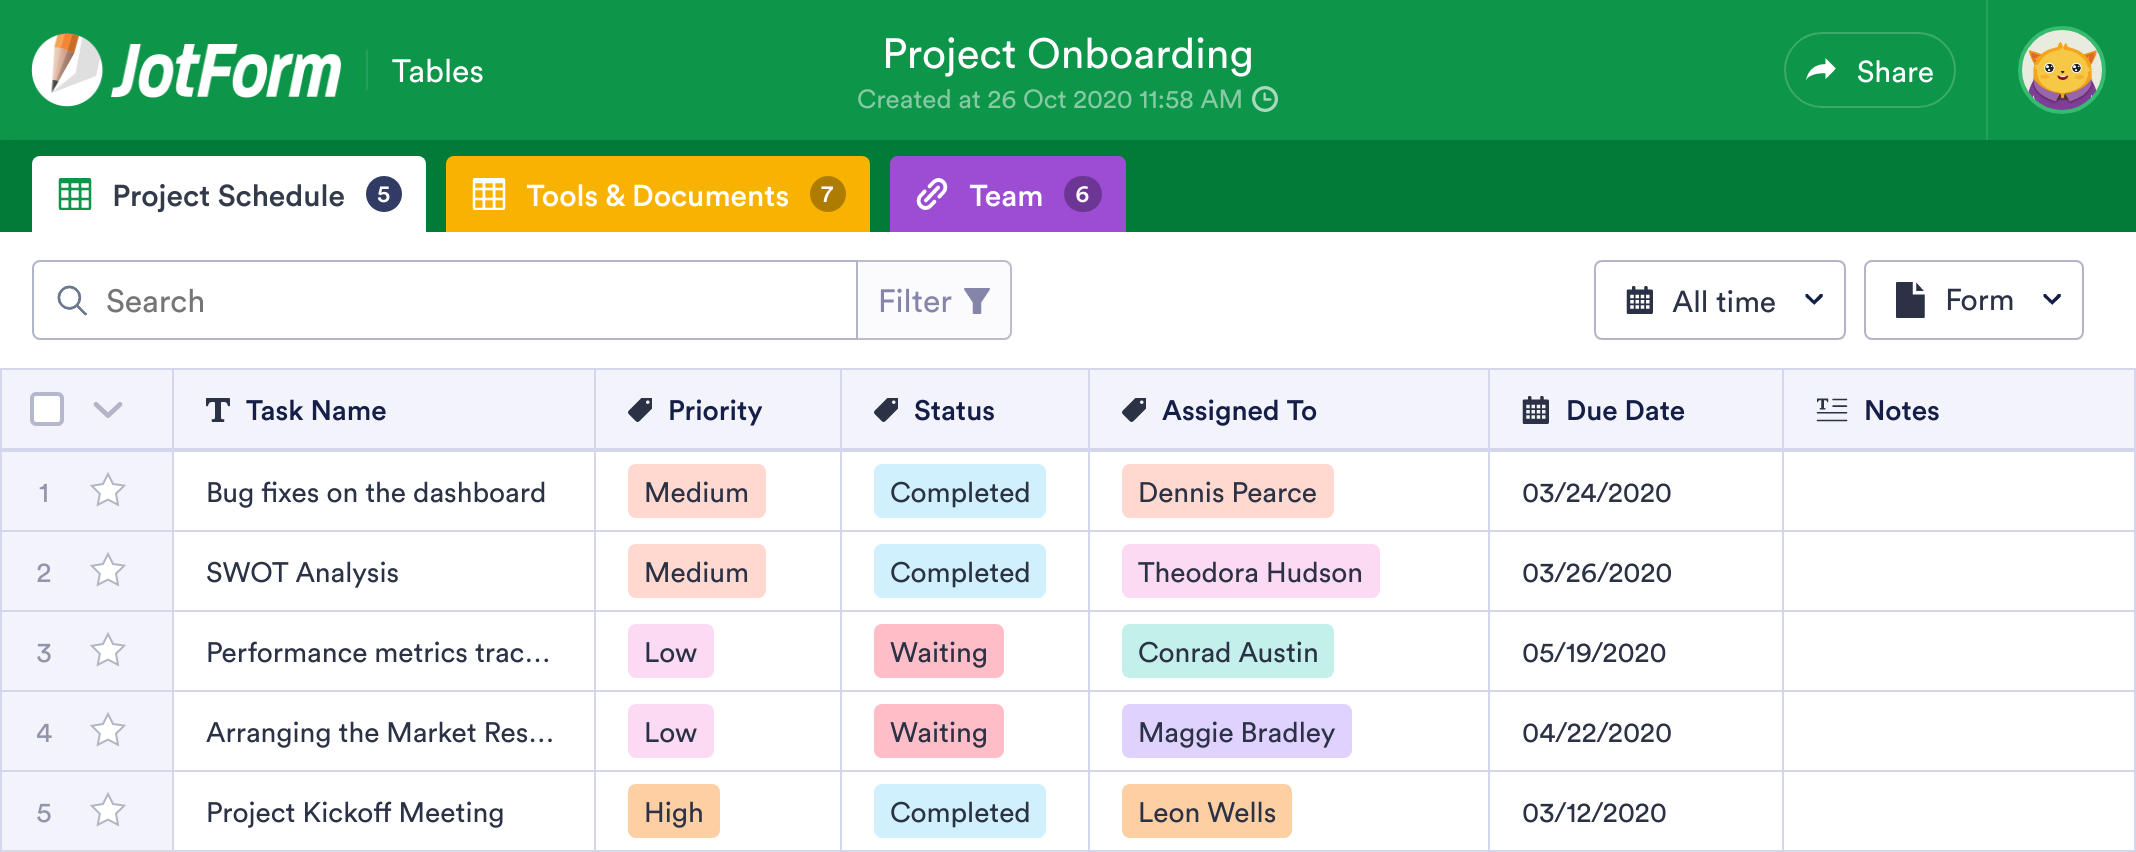 Project Onboarding